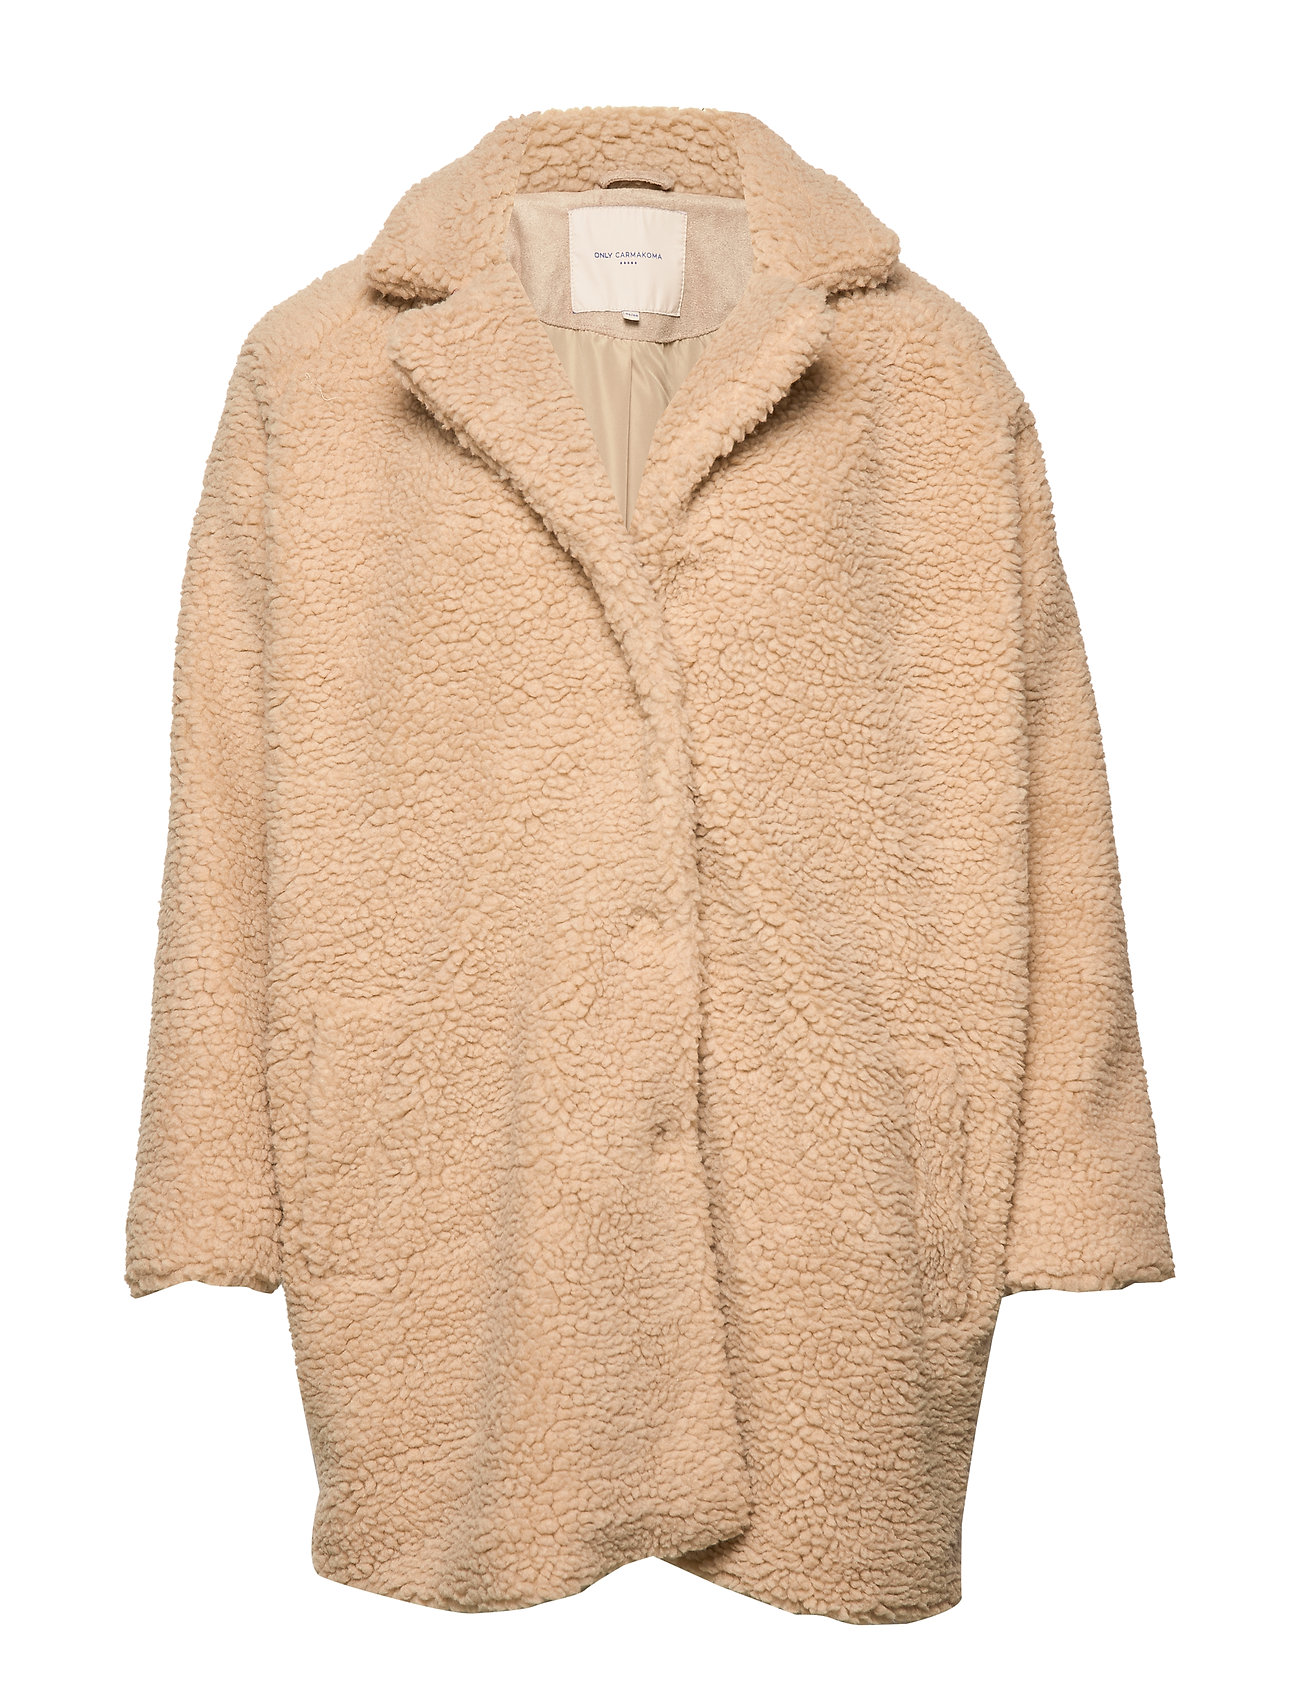 Image of Caraurelia Sherpa Coat Otw Outerwear Faux Fur Beige ONLY Carmakoma (3222480083)